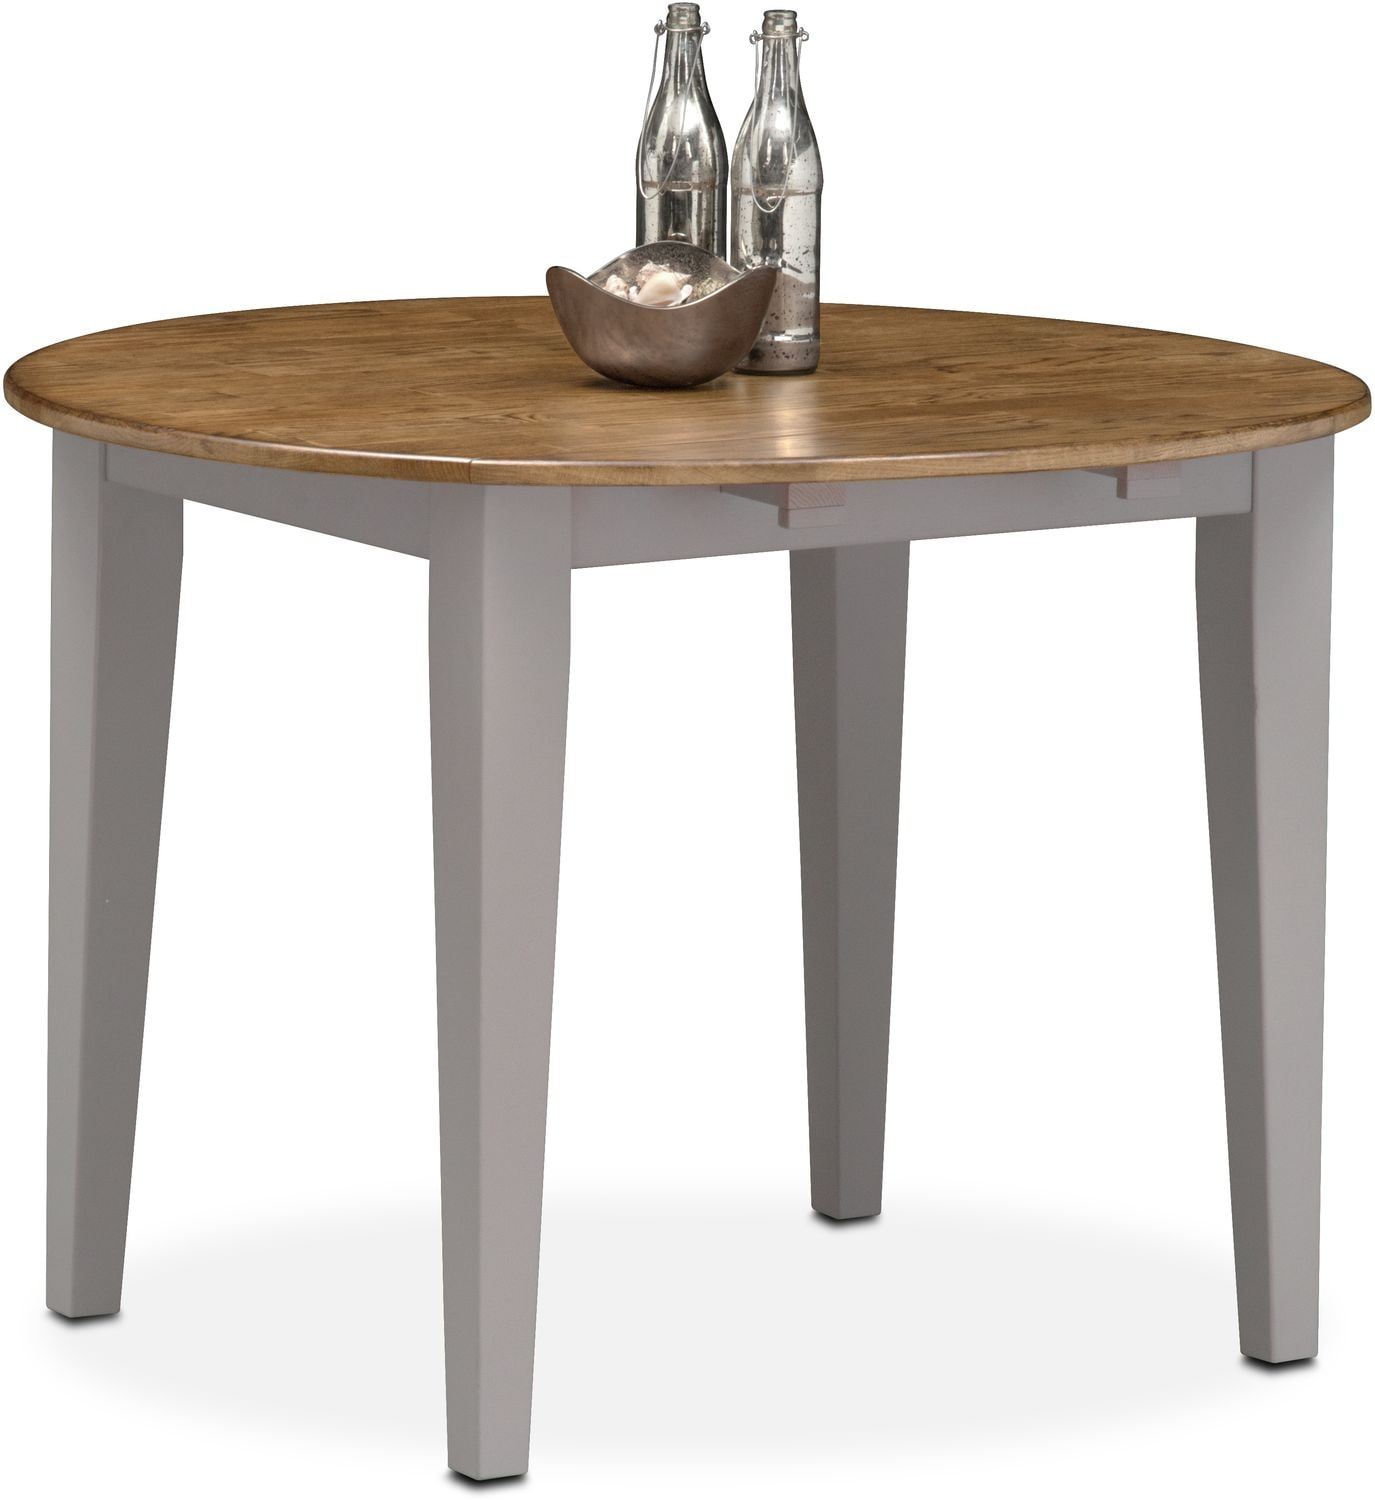 Nantucket Drop-Leaf Table - Oak and Gray